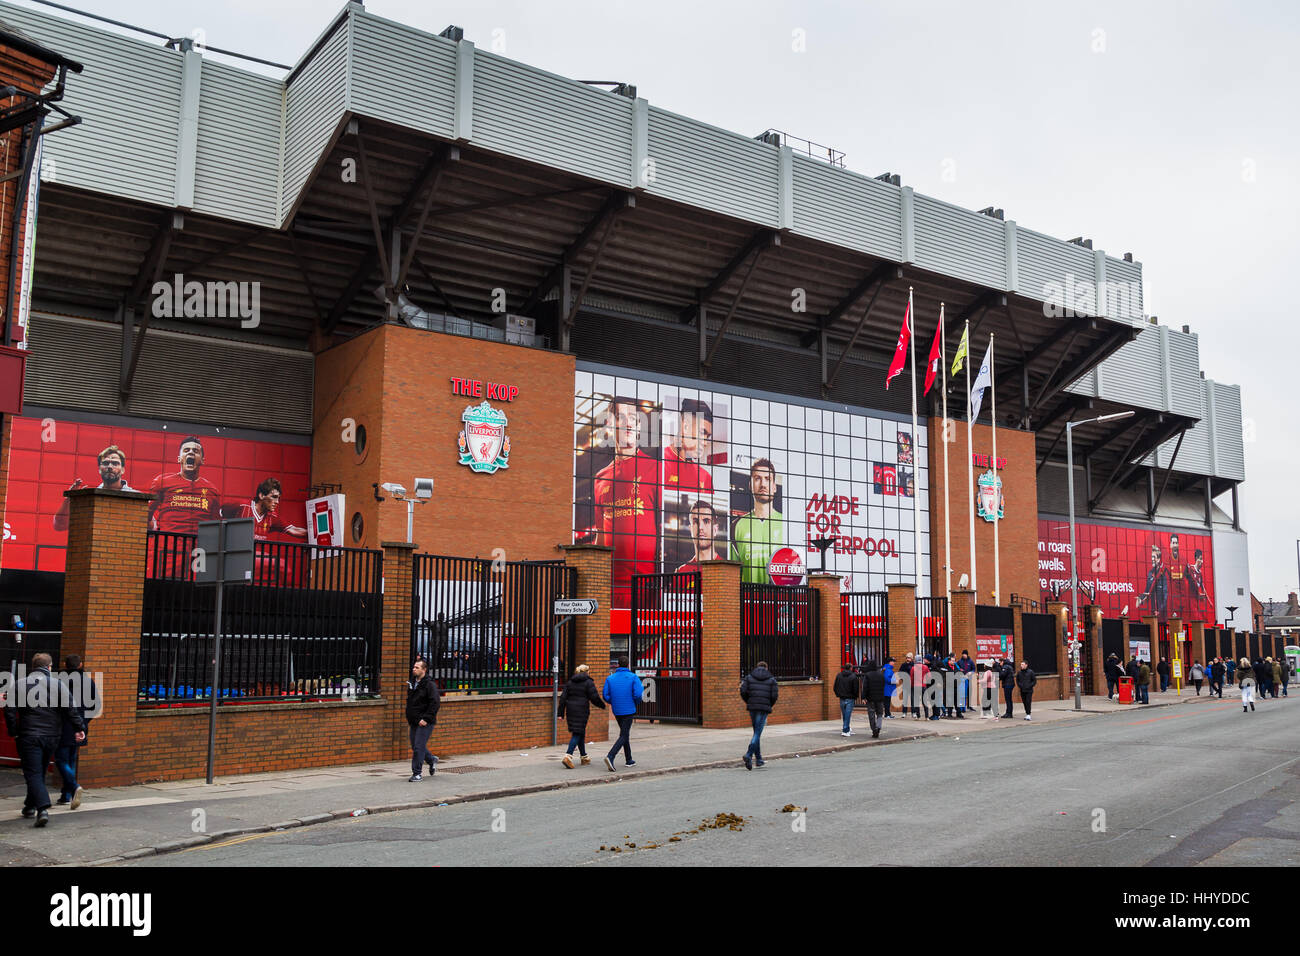 Walton Breck Road empties as the last few fans make their way into Anfield stadium as Liverpool host Swansea City - Stock Image